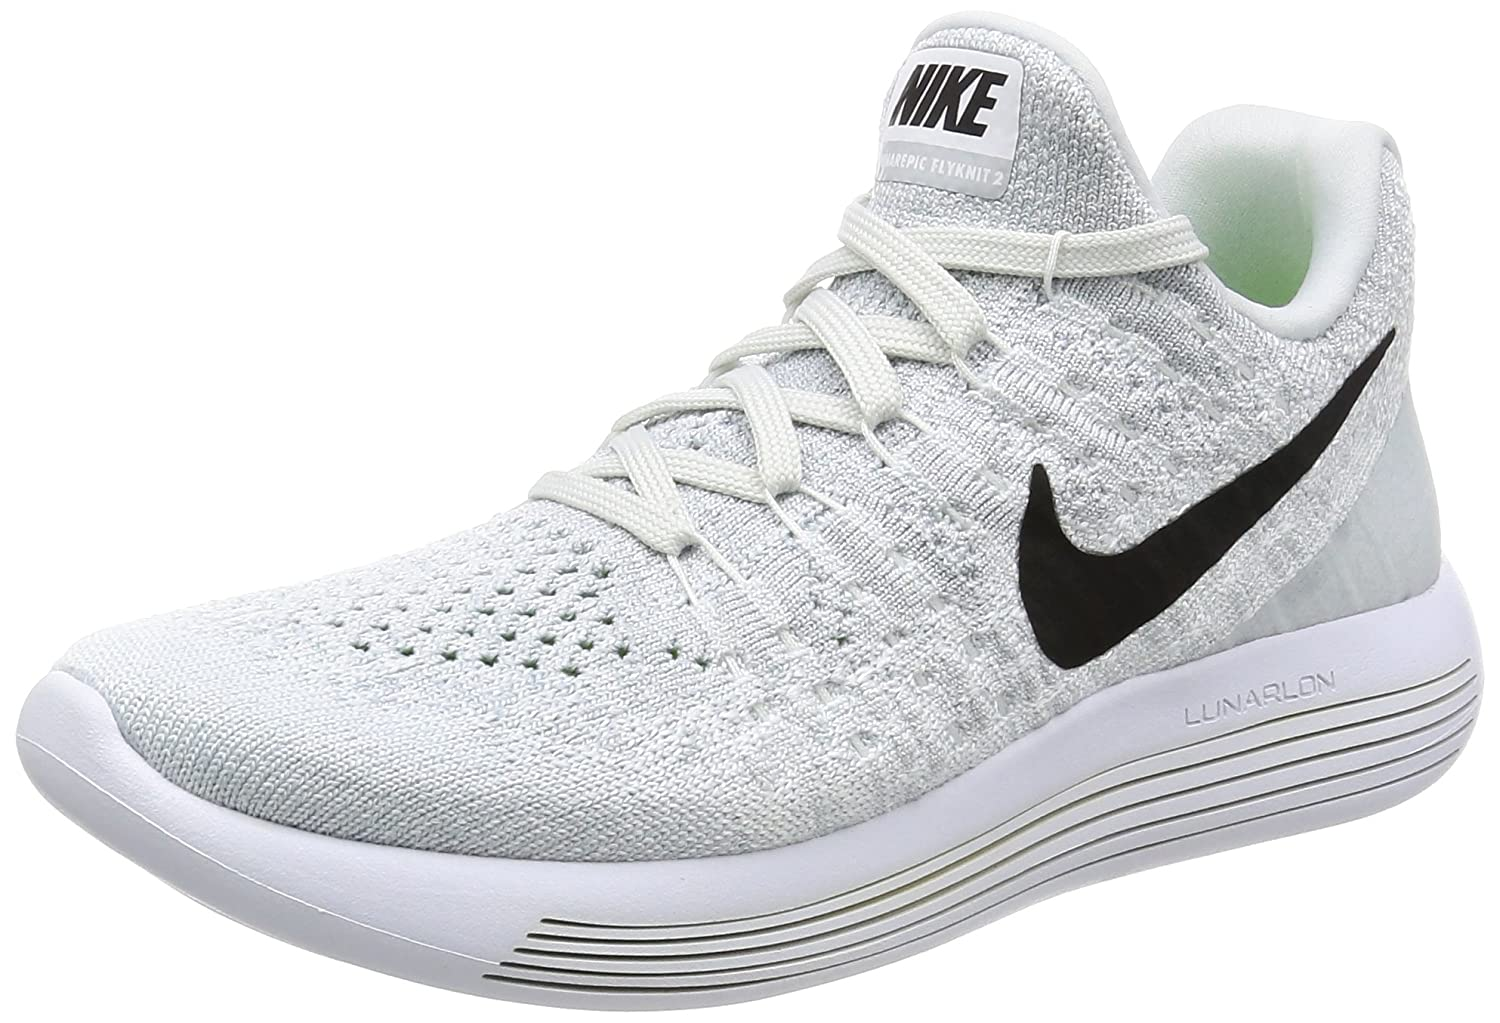 best sneakers 18f47 5d1f9 Nike Women's WMNS Lunarepic Low Flyknit 2, White/Black-Pure Platinum-Wolf  Grey, 6 M US